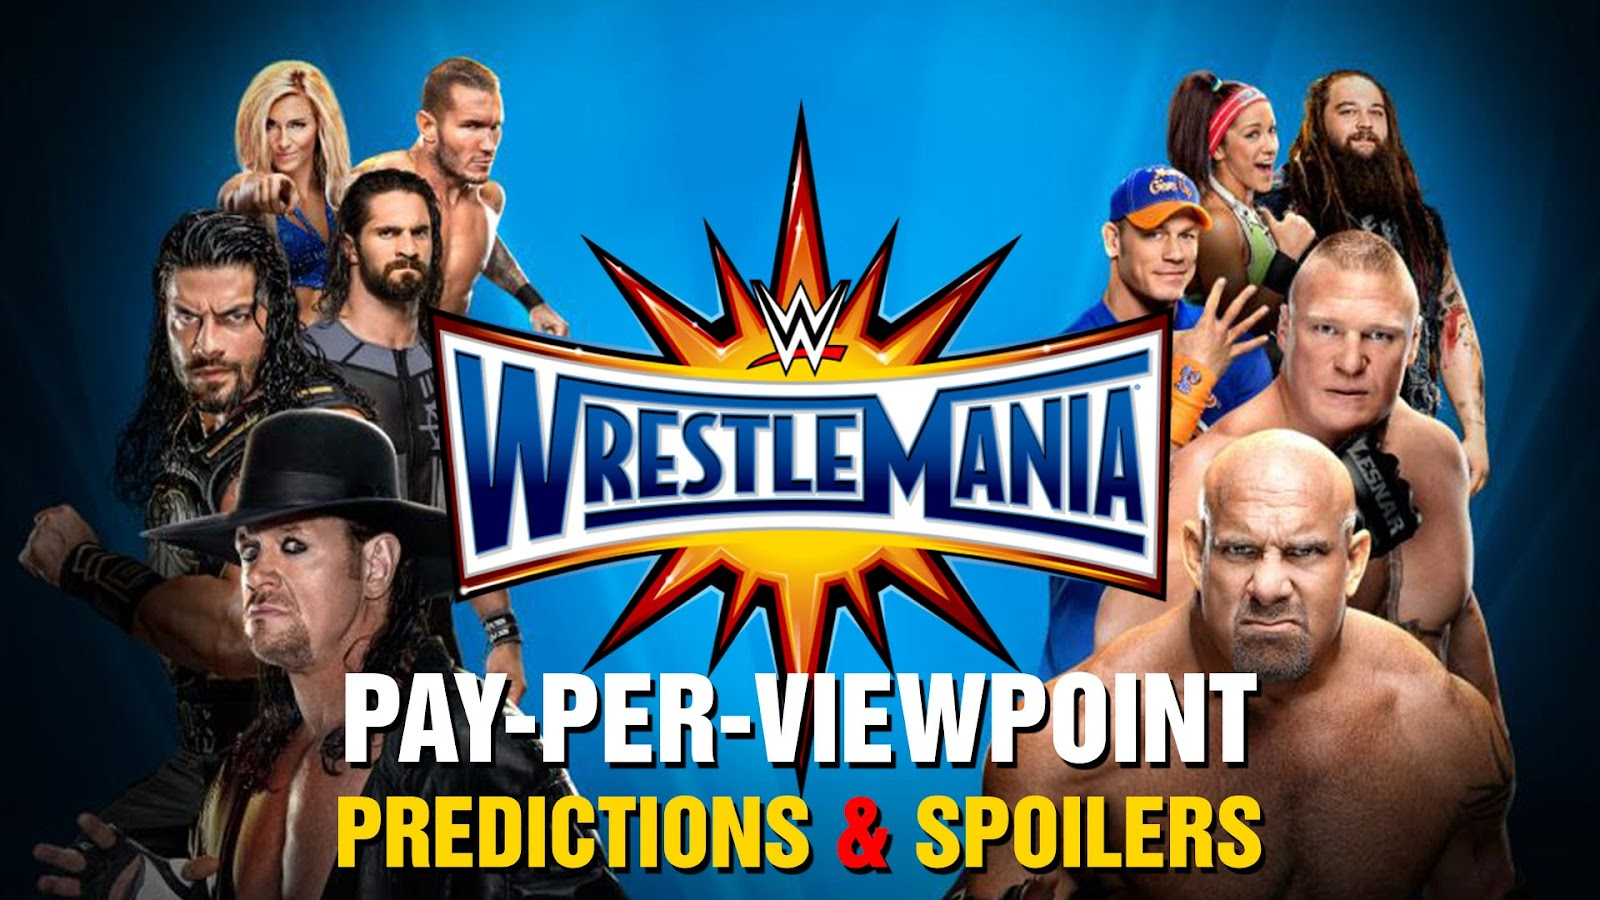 WWE WrestleMania 33 spoilers podcast